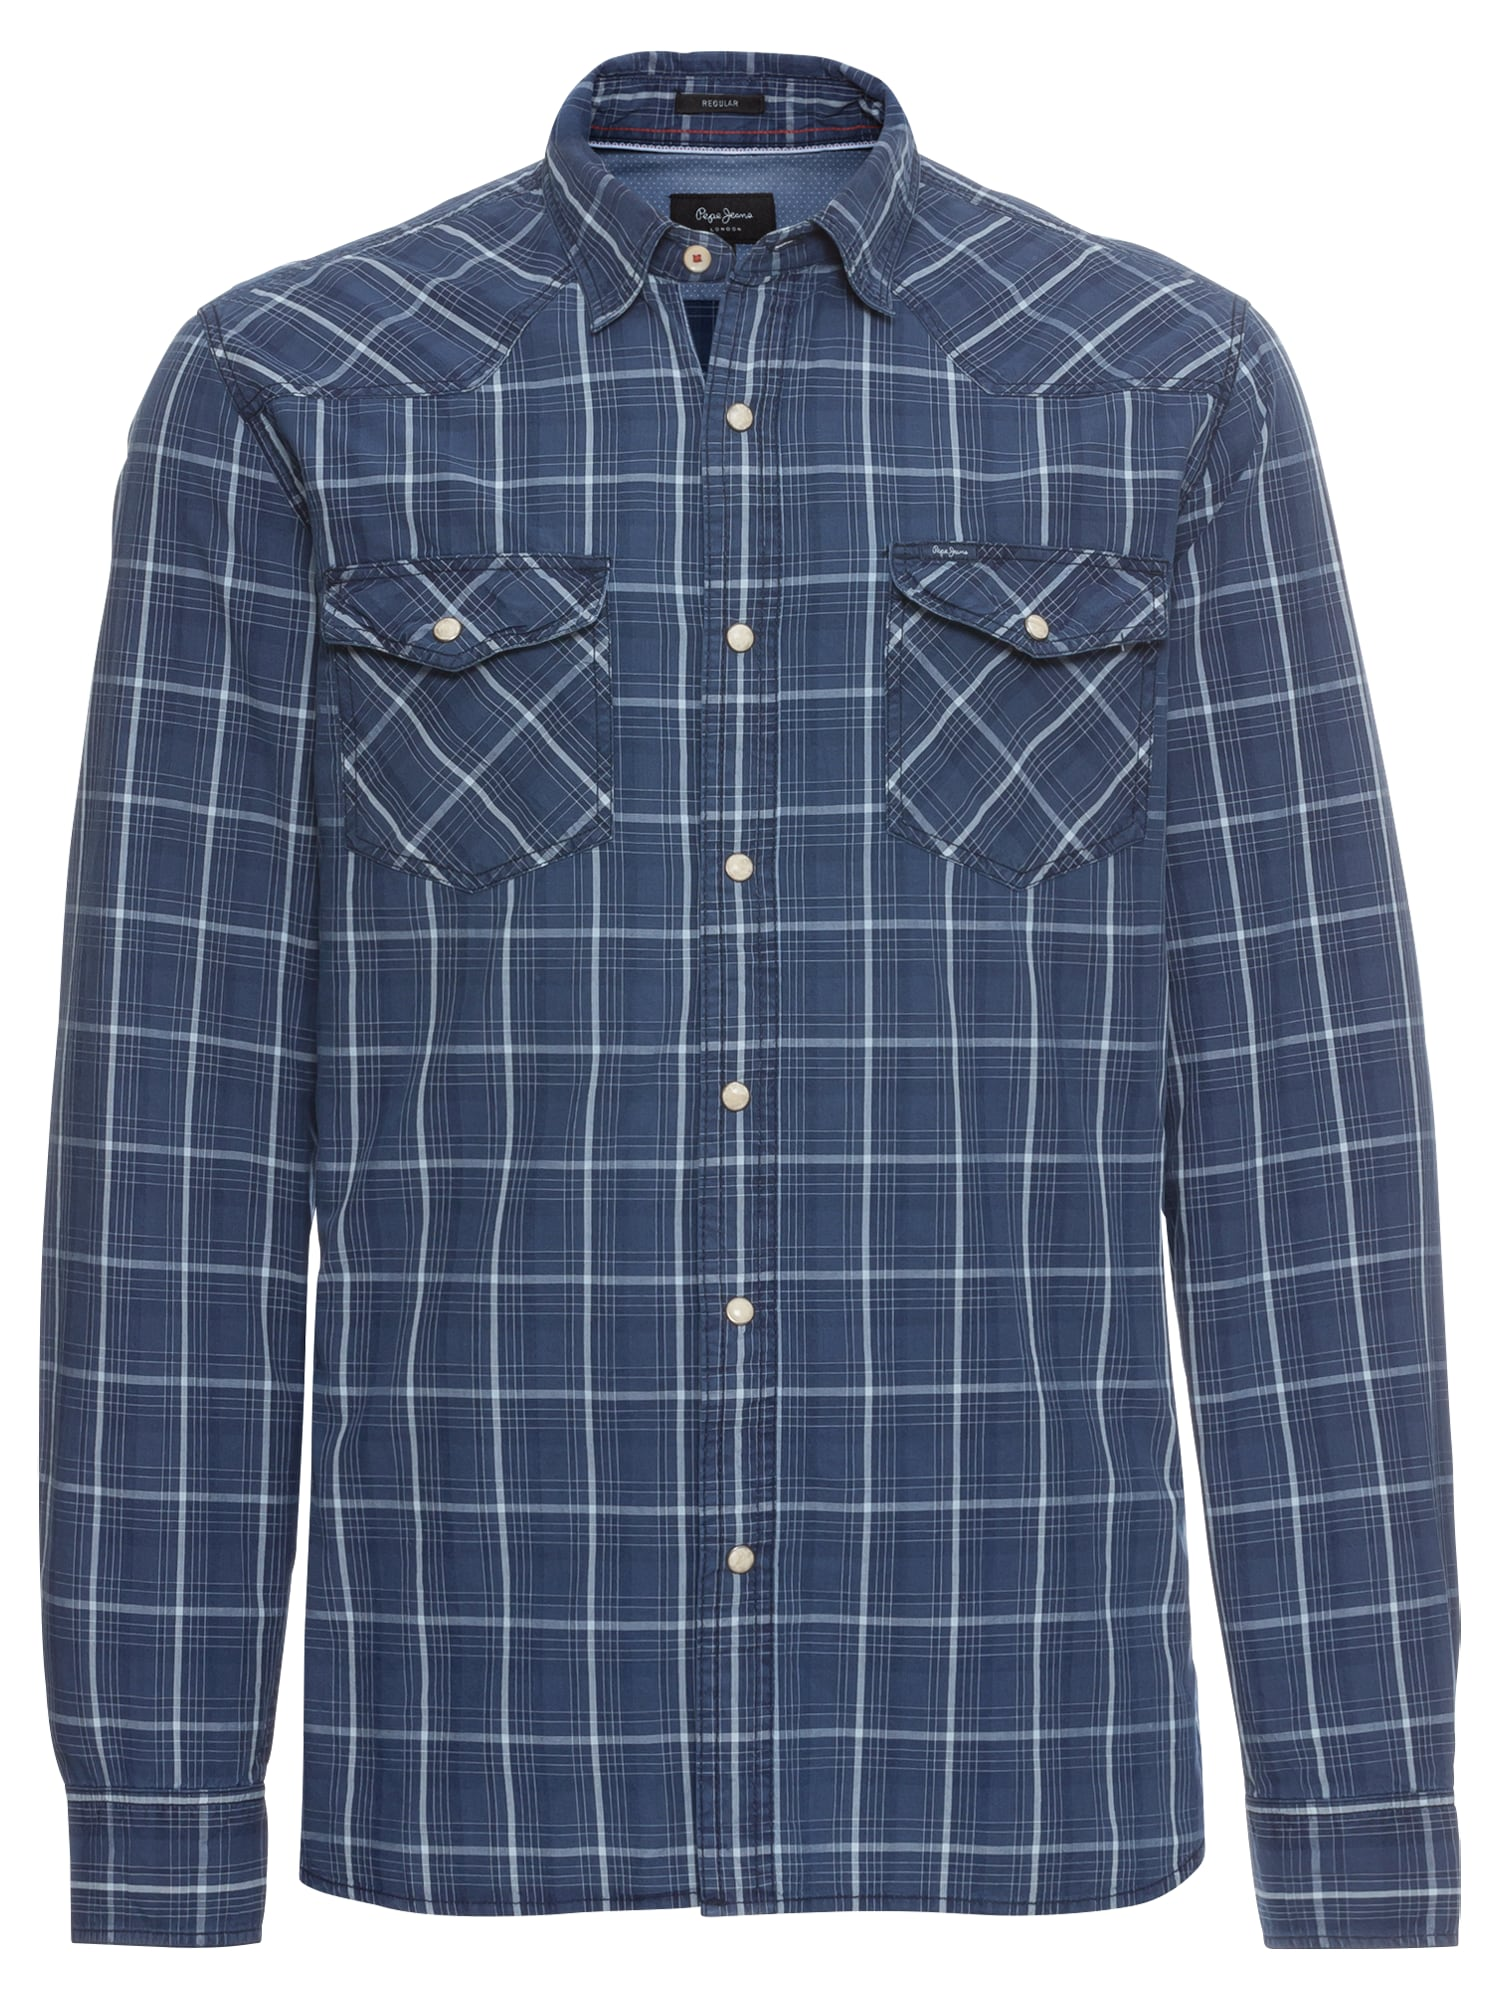 Pepe Jeans Heren Overhemd ALEPH indigo wit